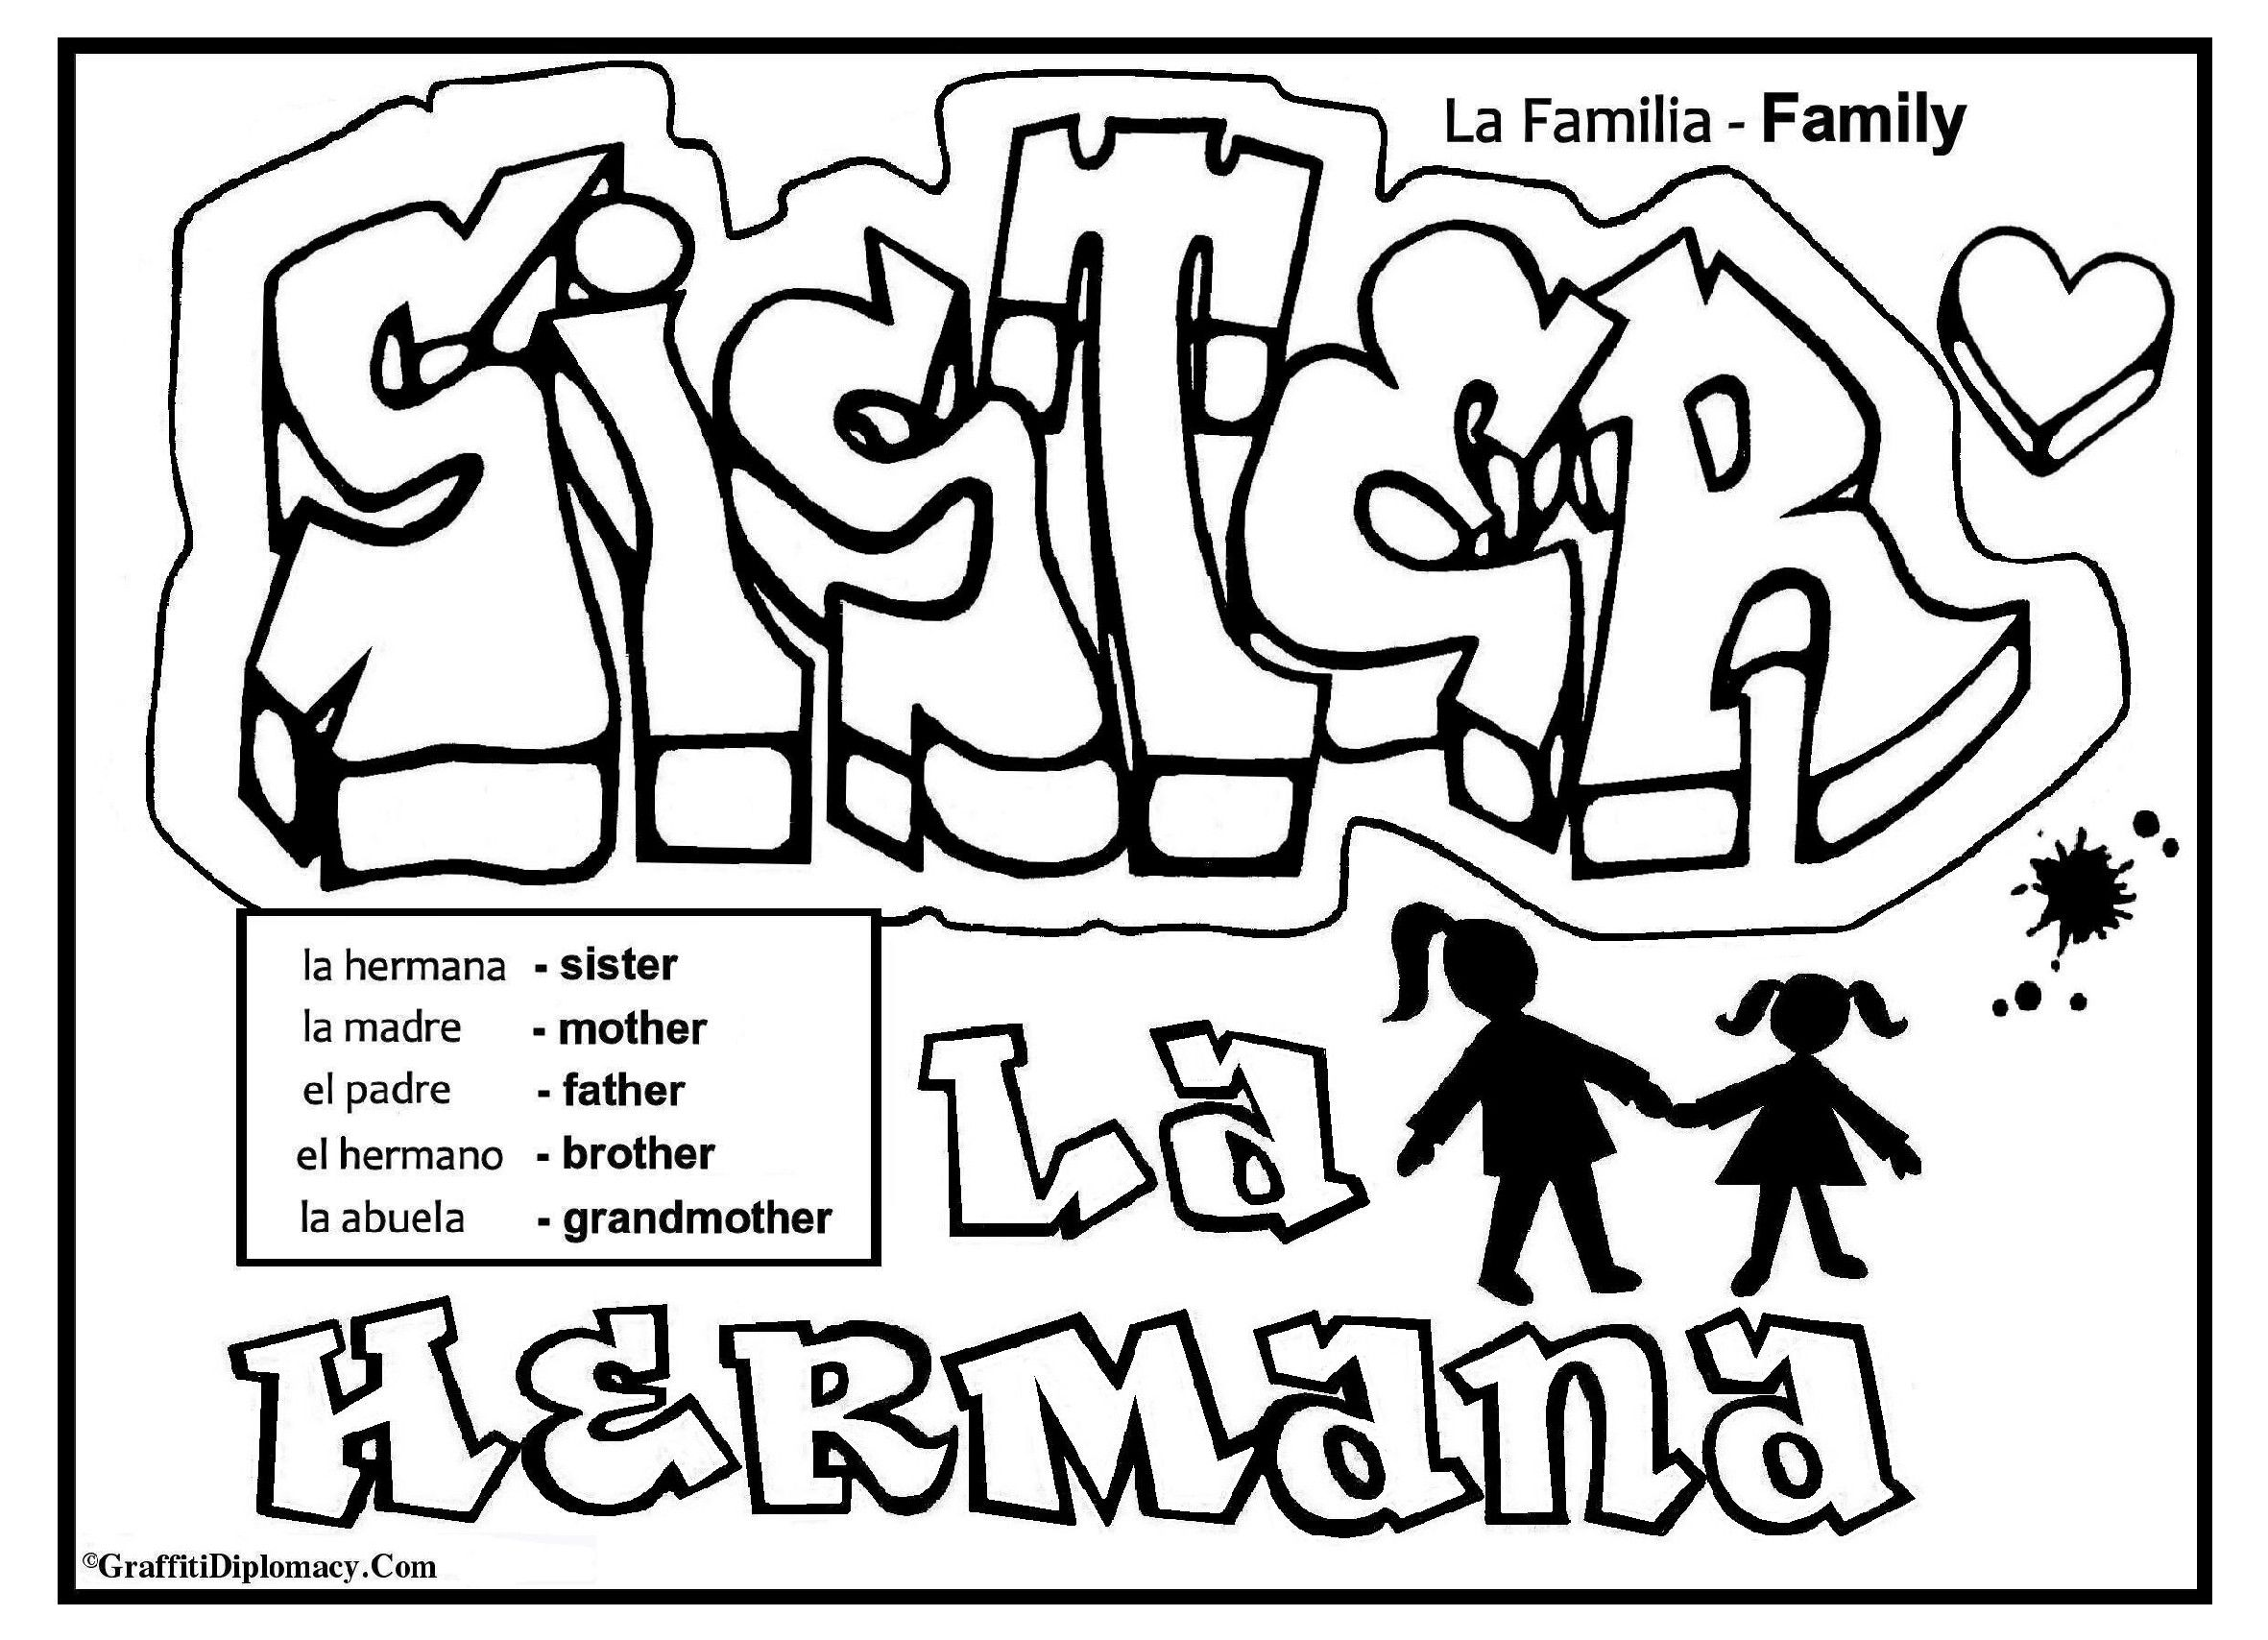 english spanish free printable graffiti coloring page family la familia